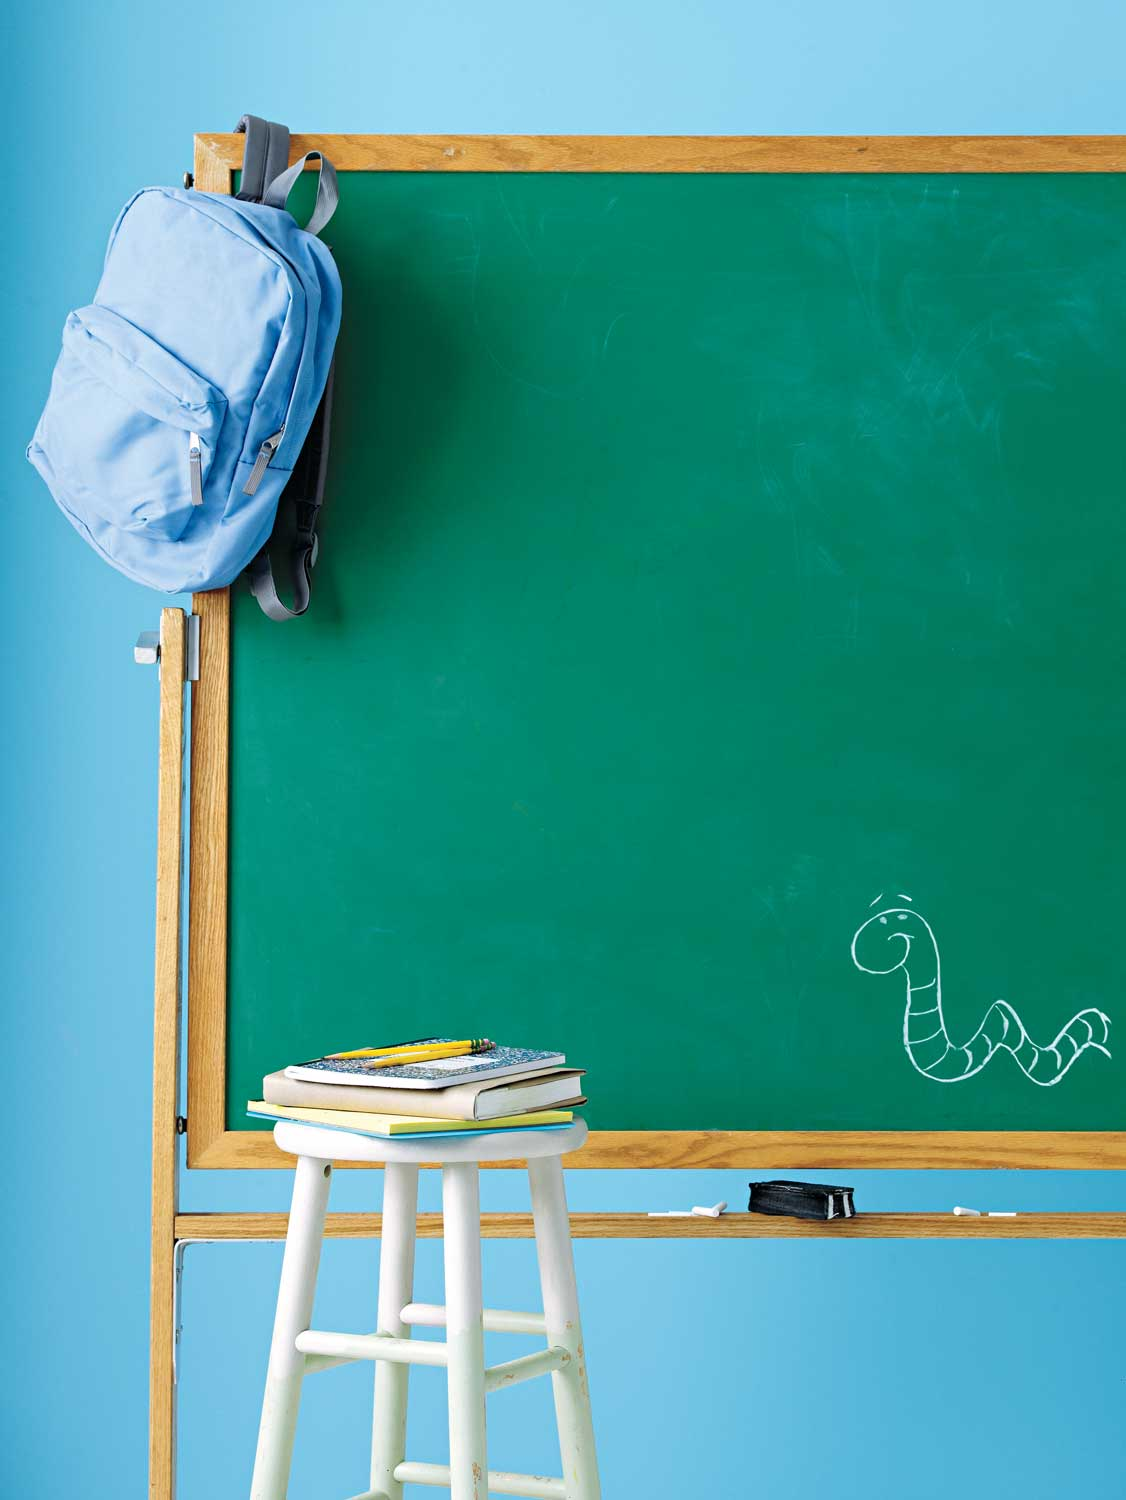 Chalkboard and school books